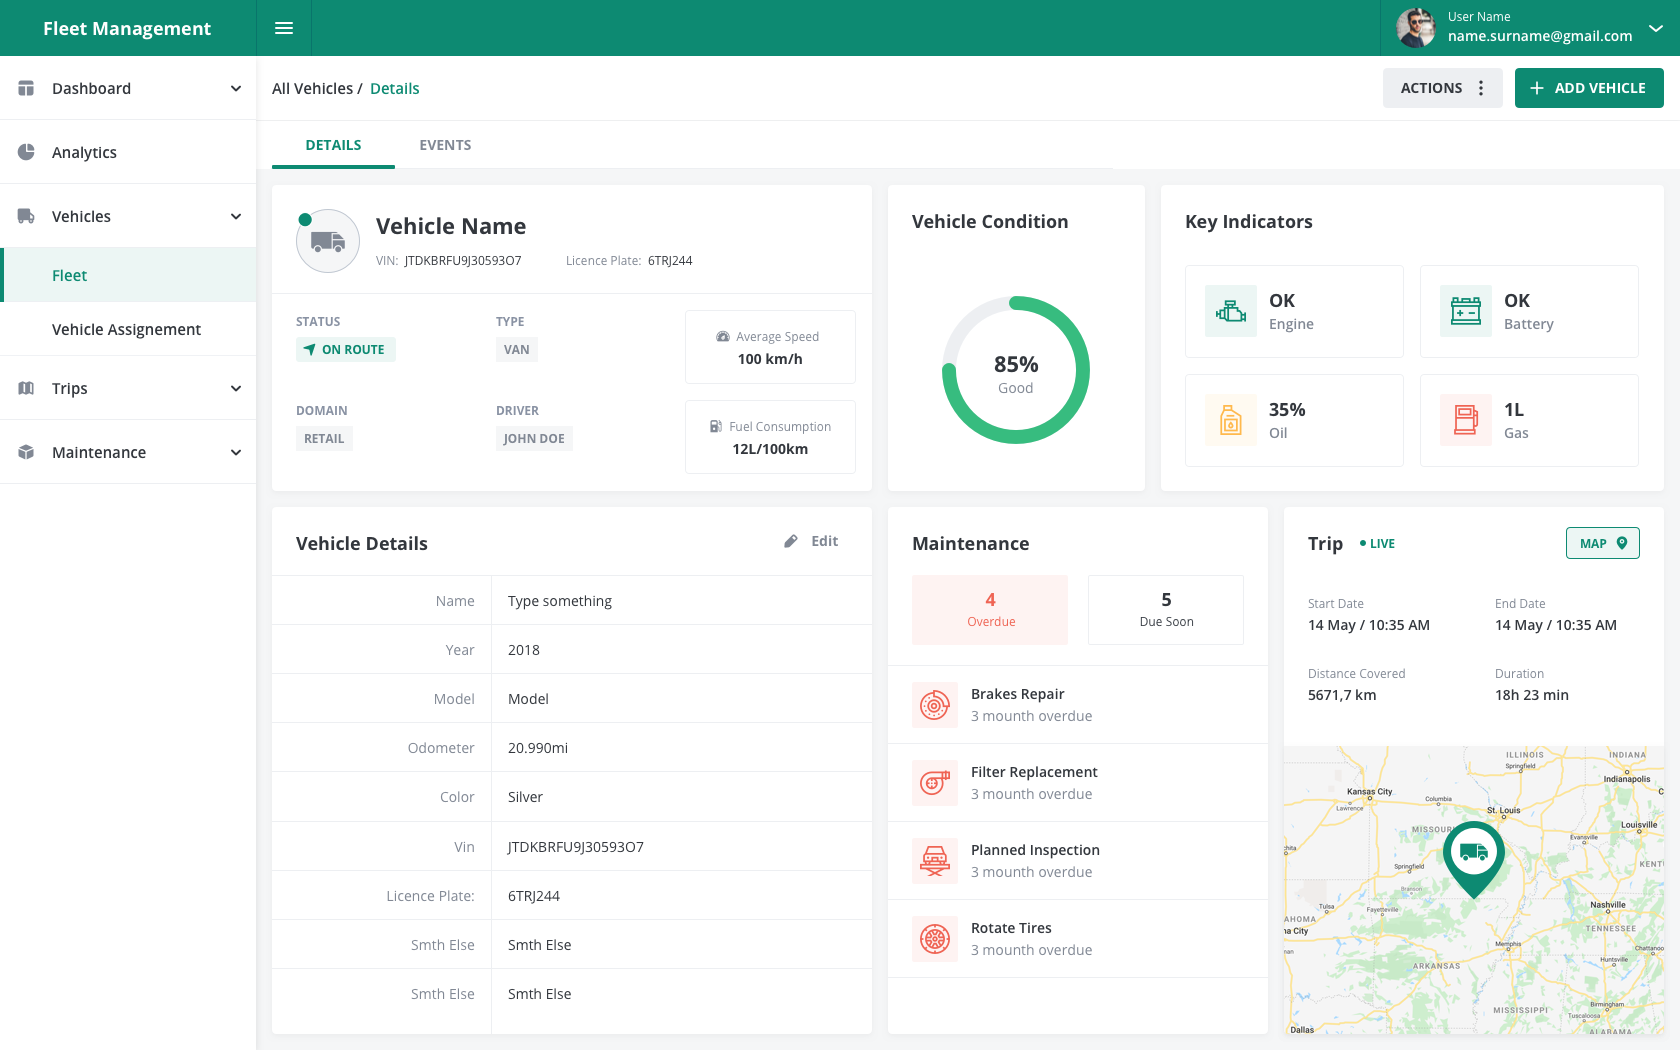 Fleet Management Template